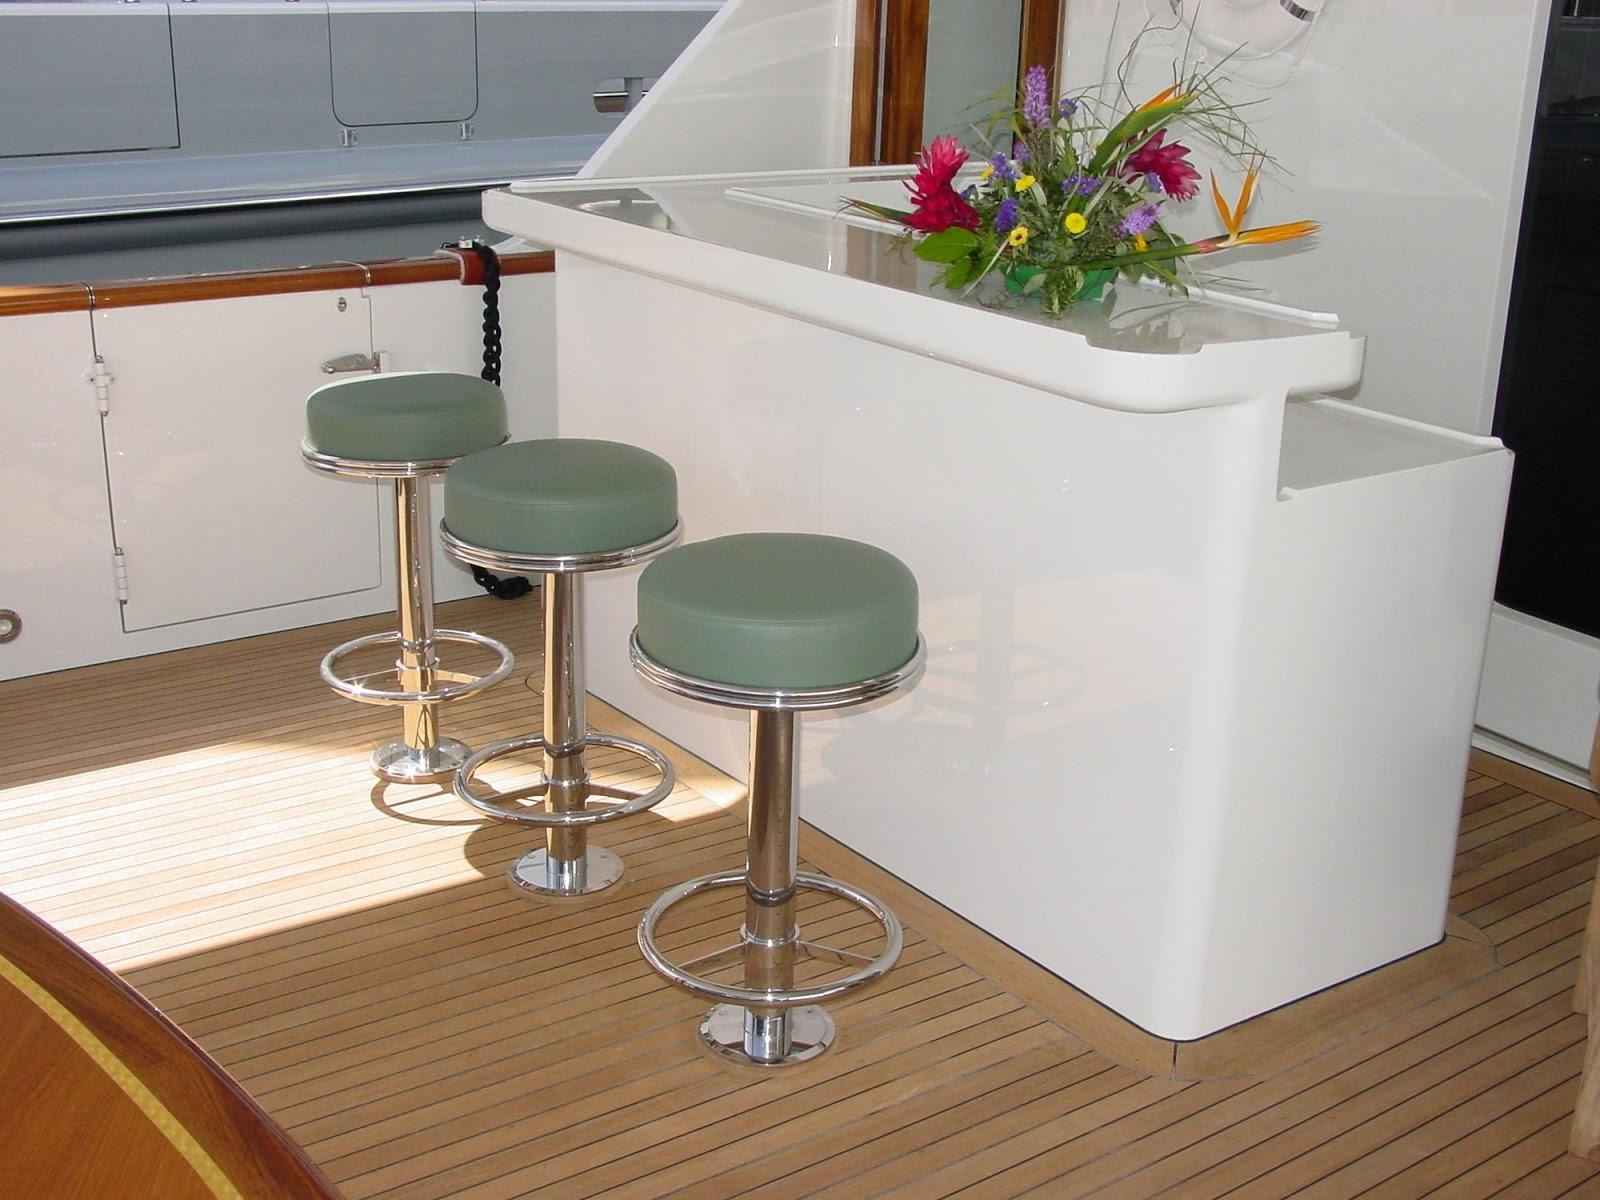 Metal Stainless Steel Bar Stools Trend Cabinet Hardware Room